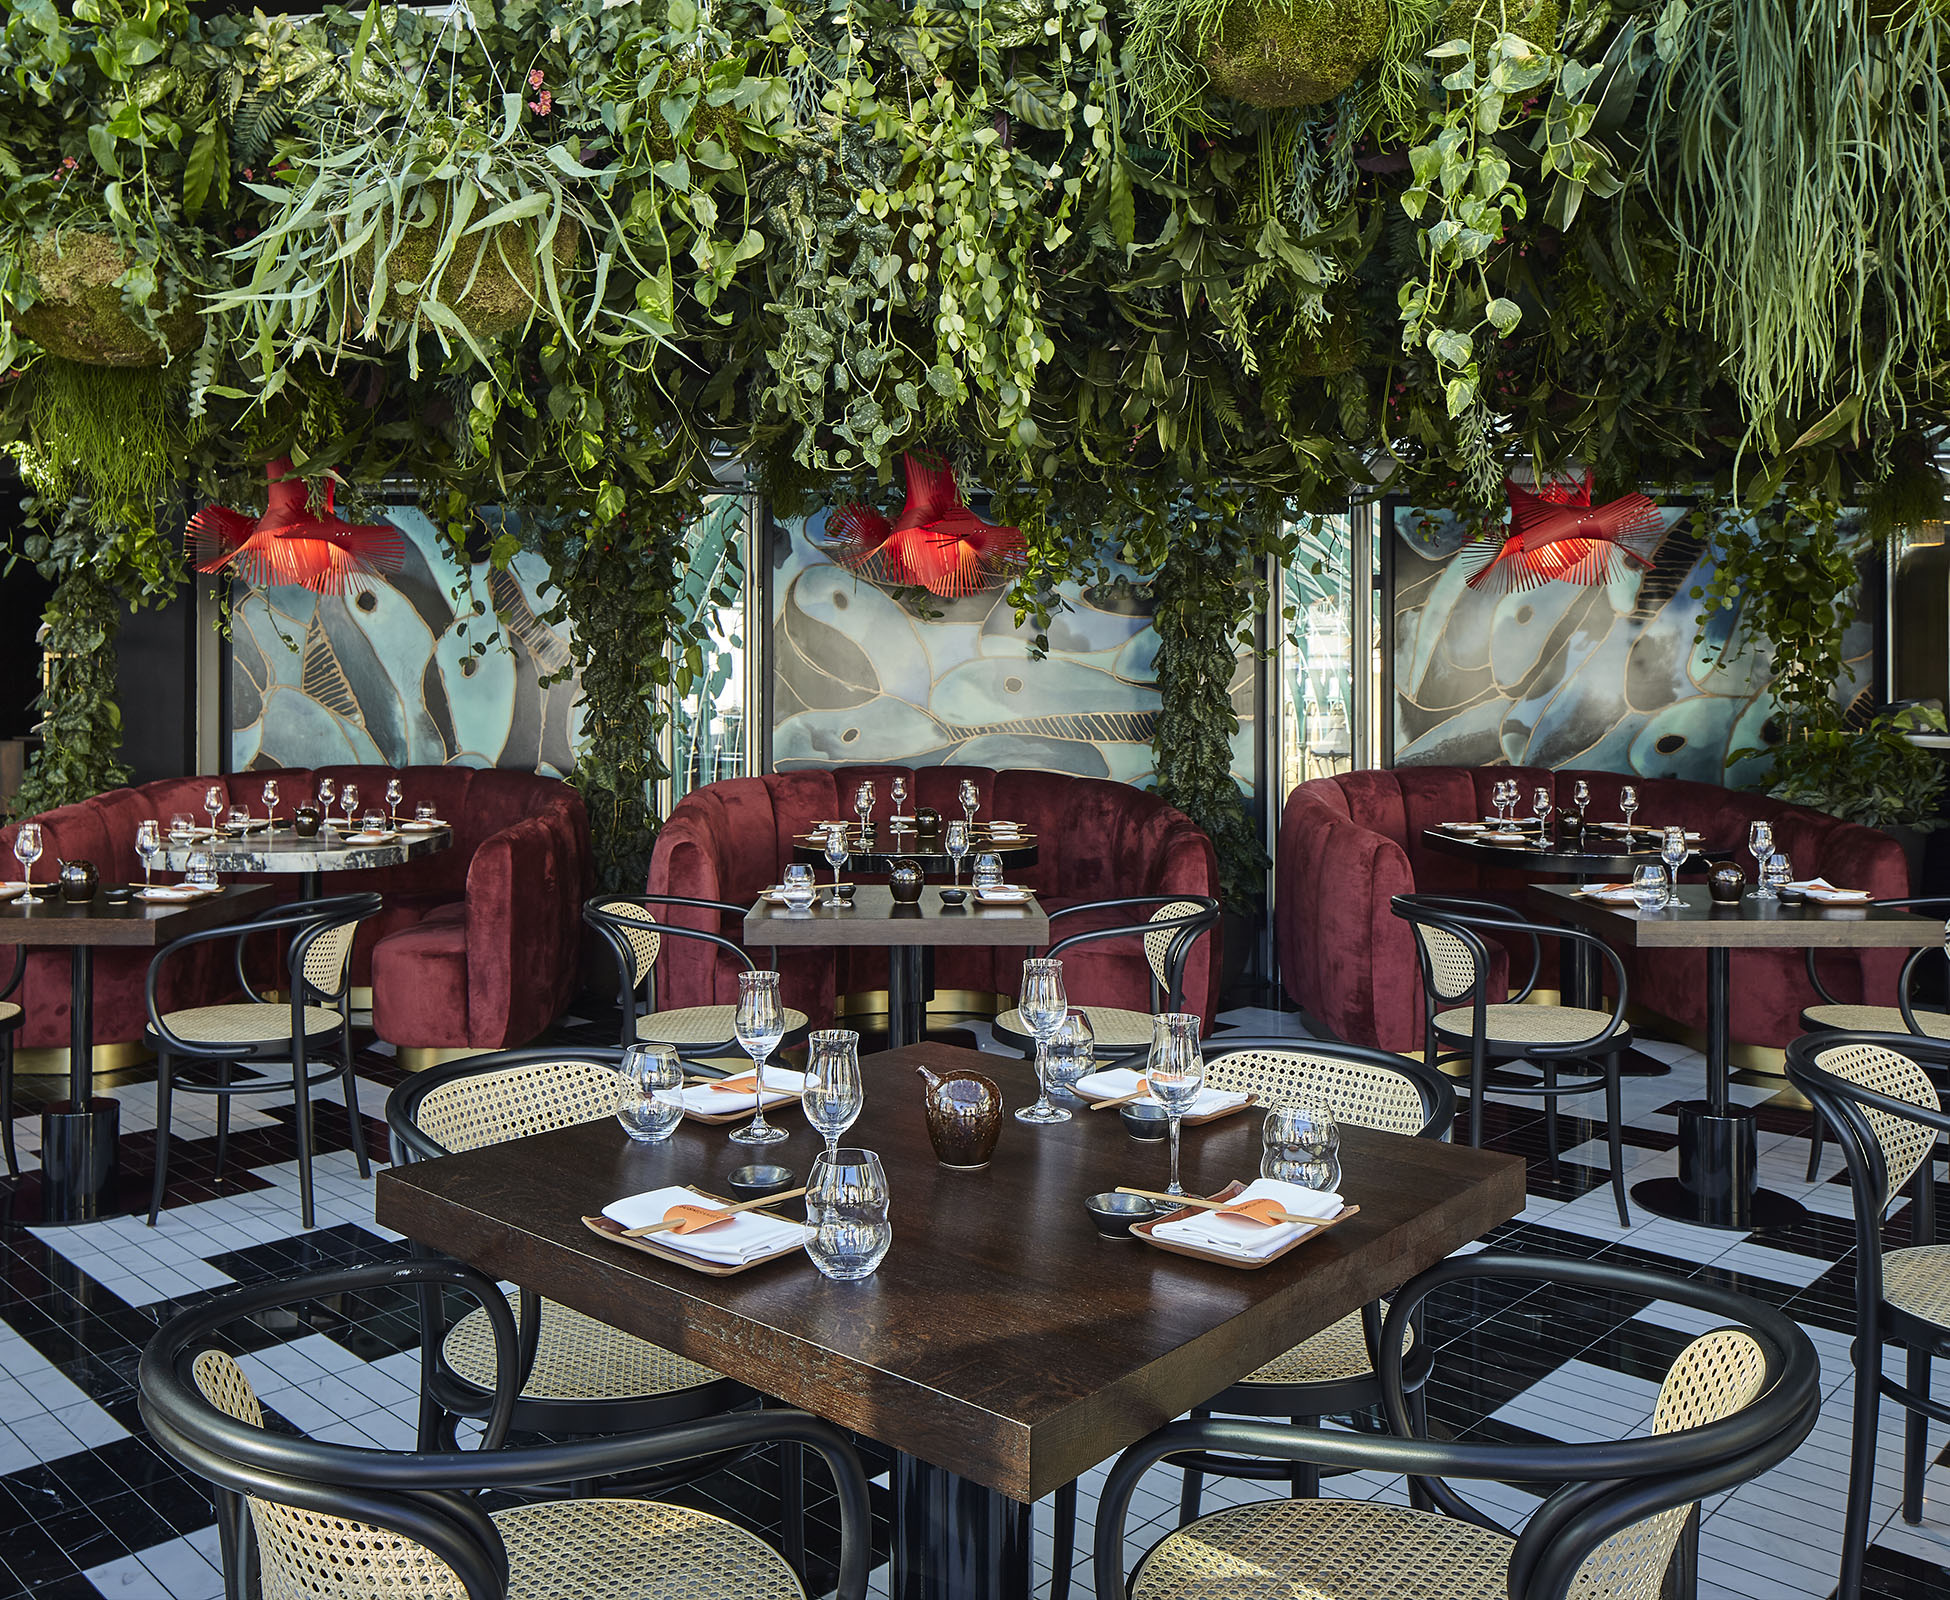 Cascading plants envelop the customer in the lush green atmosphere. Tall climbers are trained up and across the restaurant framework, merging into the 'Living Ceiling'.